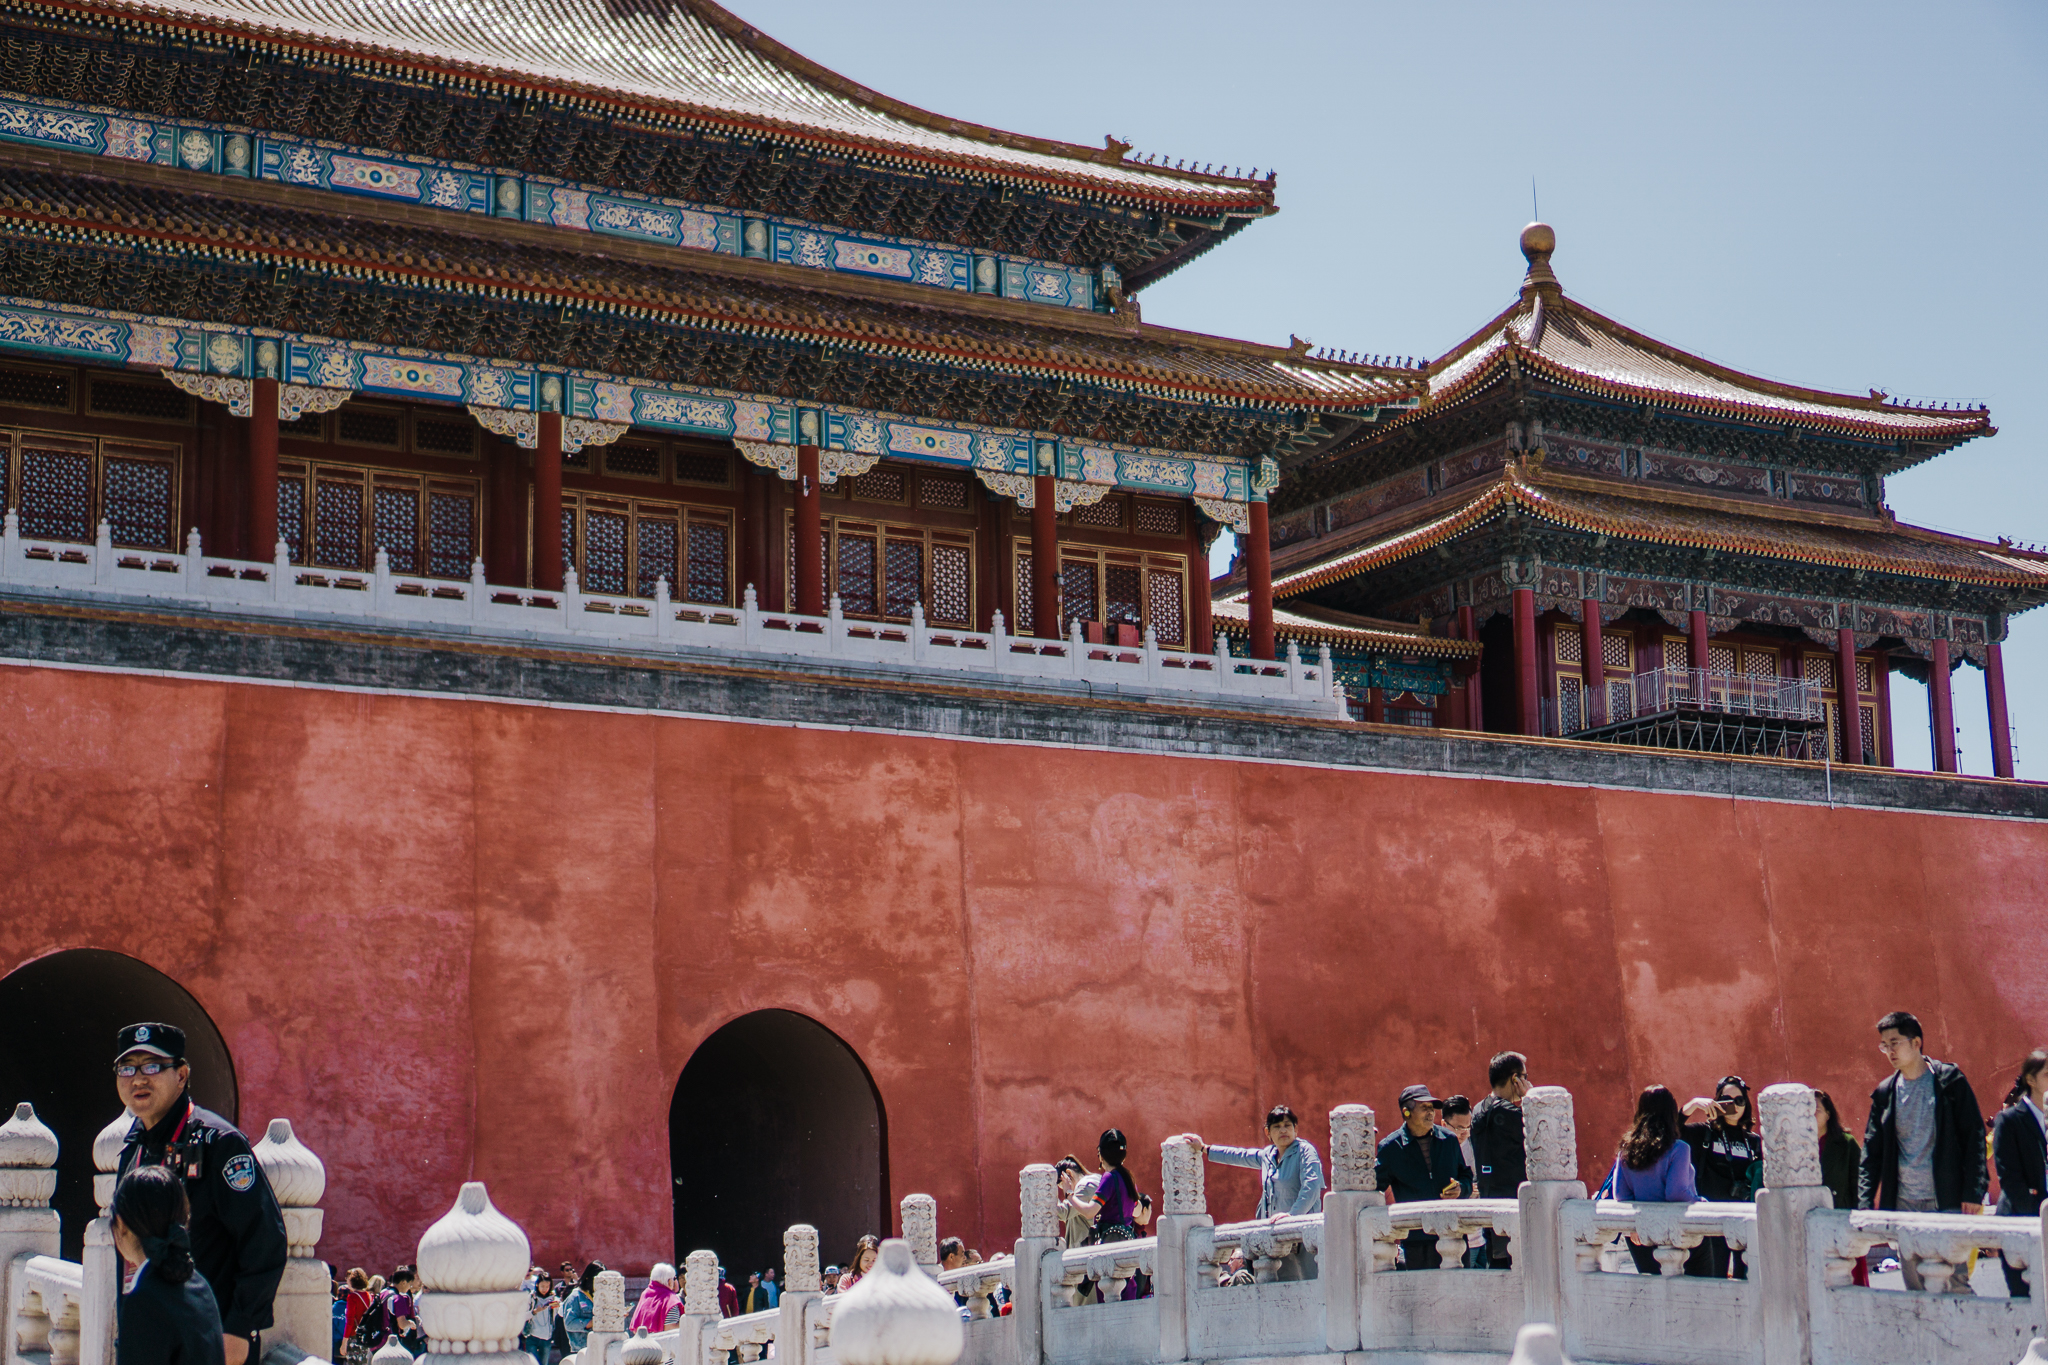 Mutianyu, Great Wall of China,  Beijing, Forbidden City, Emperors Summer Palace (44 of 51).jpg